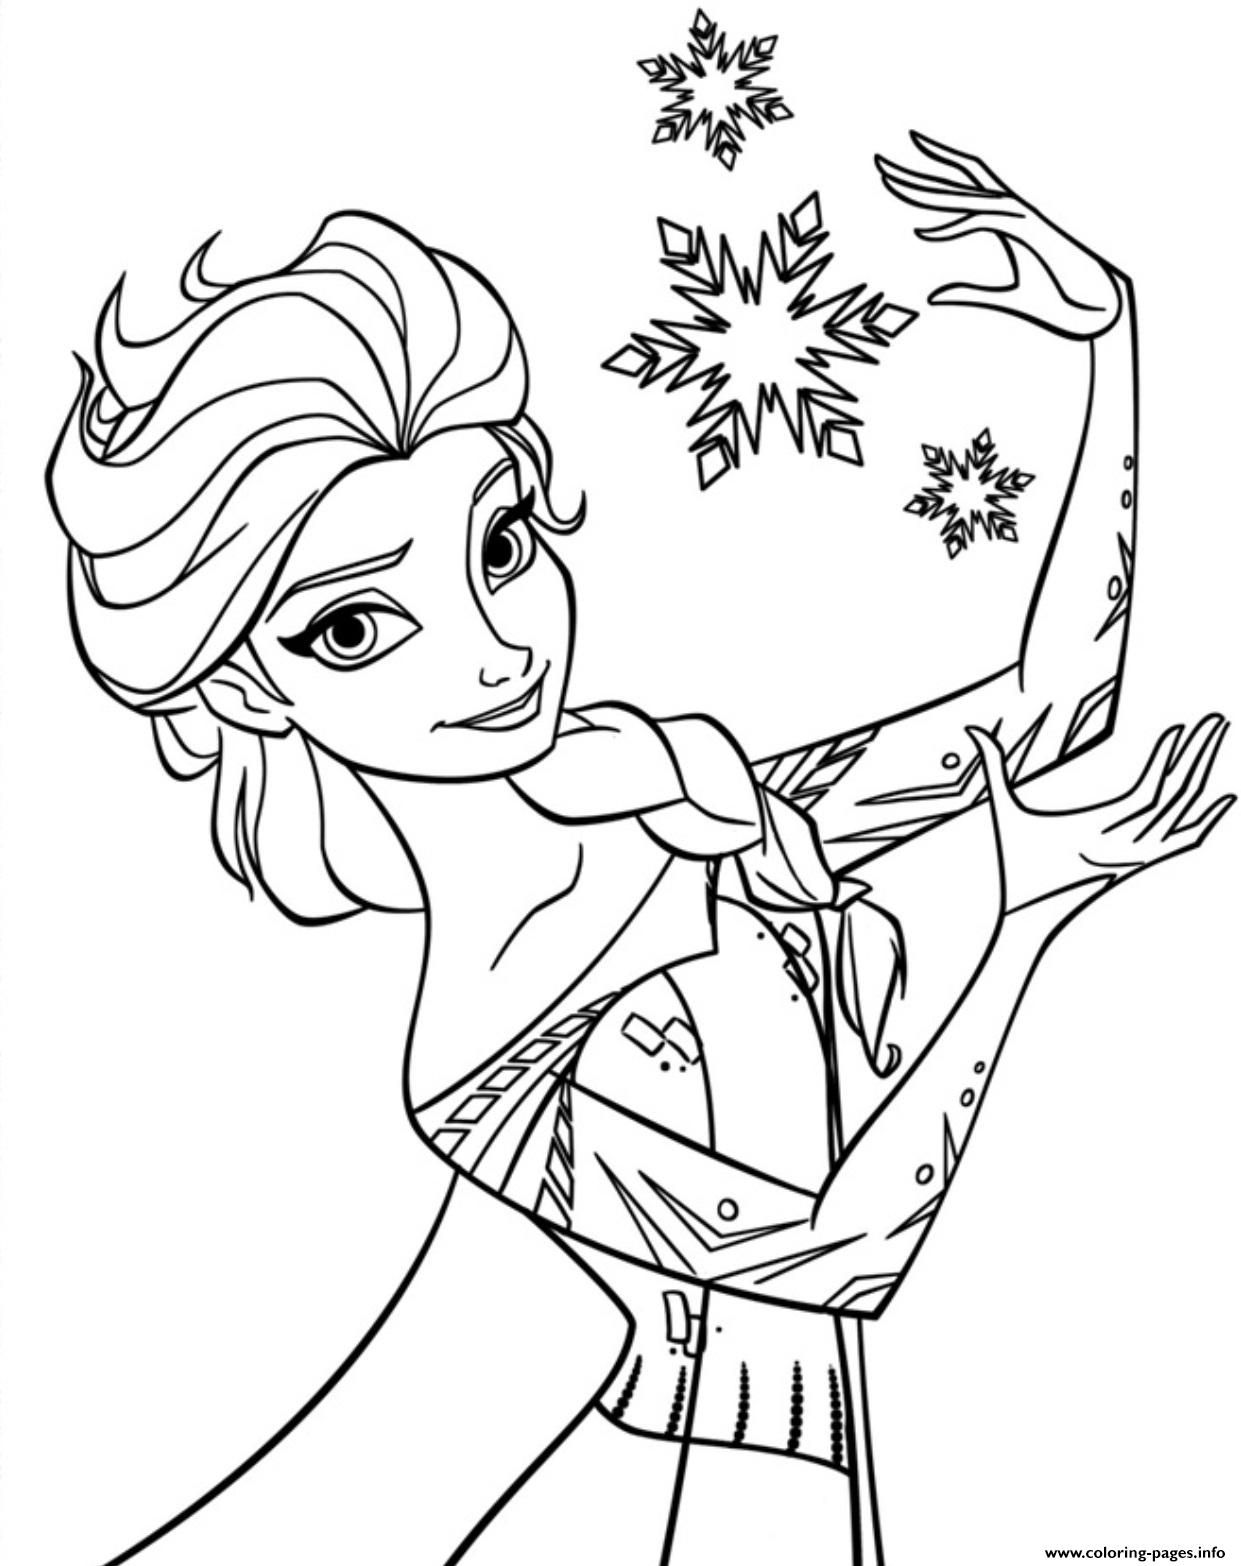 Coloring book info princess - Printable Frozen Coloring Pages Printable And Coloring Book To Print For Free Find More Coloring Pages Online For Kids And Adults Of Printable Frozen